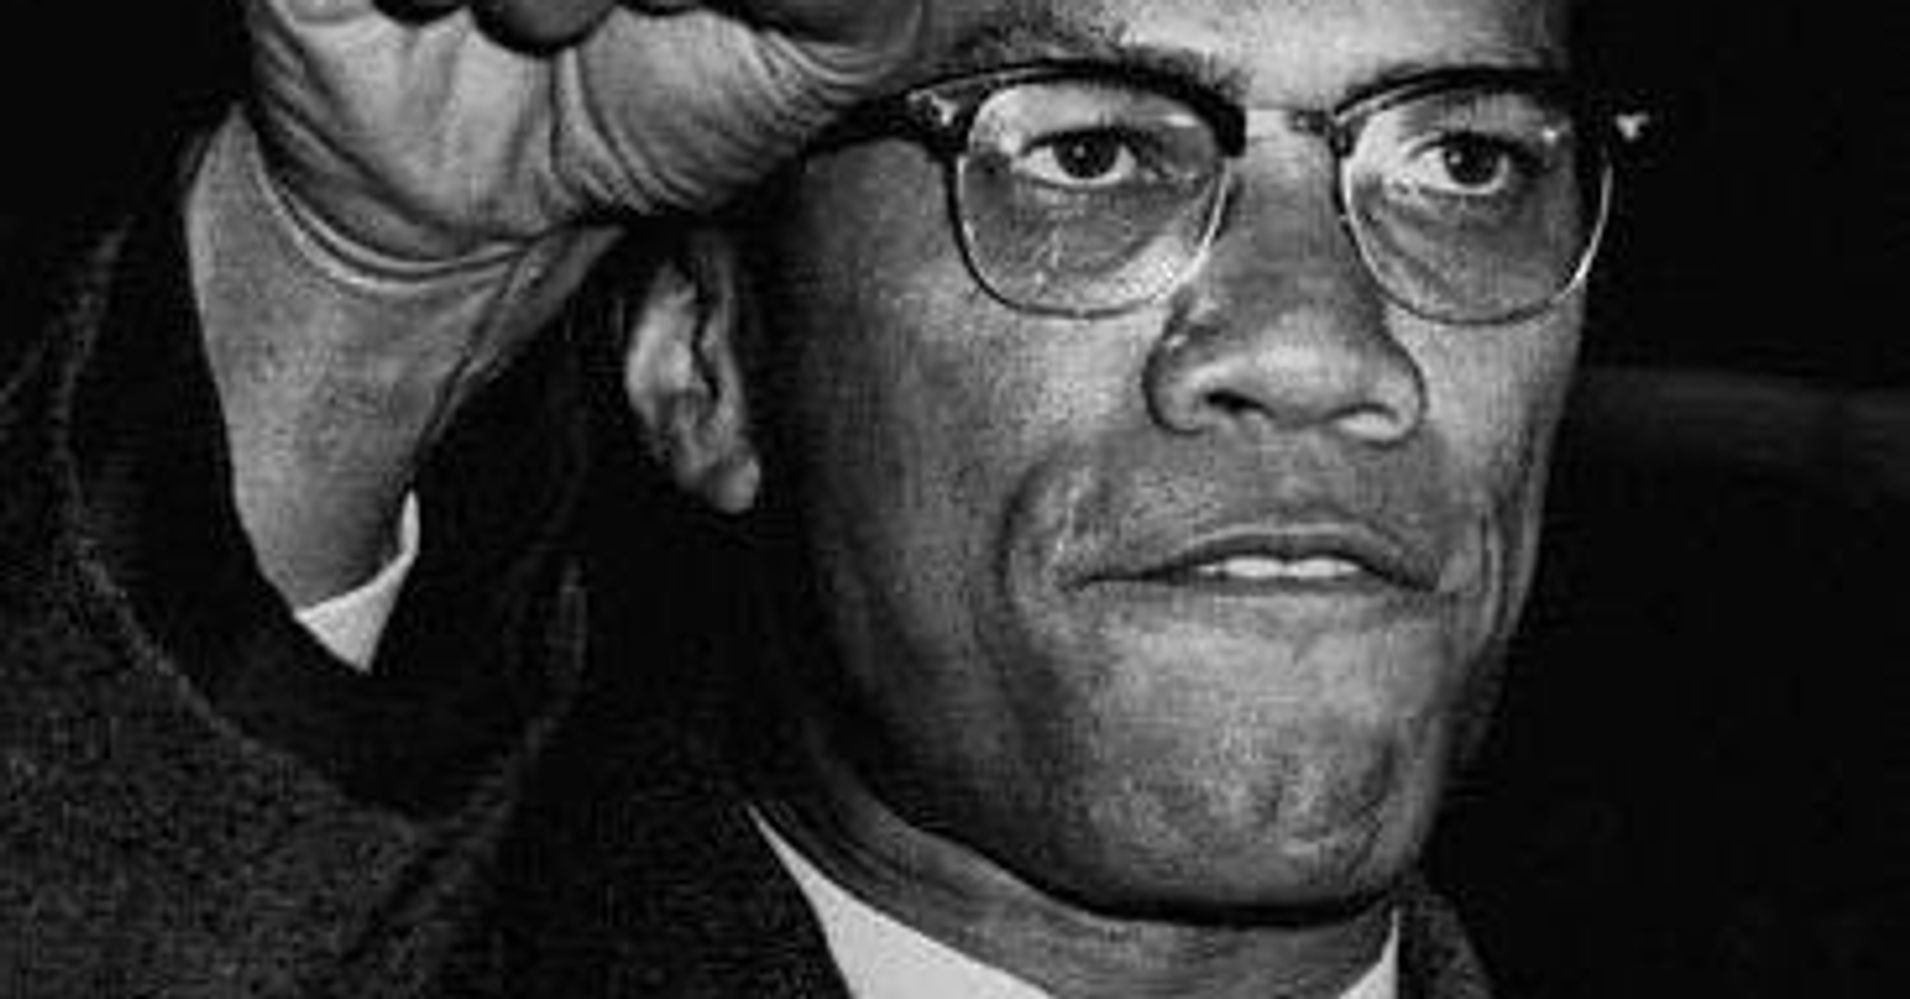 witness to the assassination of malcolm On february 21, 1965 malcolm x was assassinated by three members of the newark chapter of the nation of islam led by elijah muhammed the new york post published this eye witness account by reporter thomas skinner on february 22, 1965:.